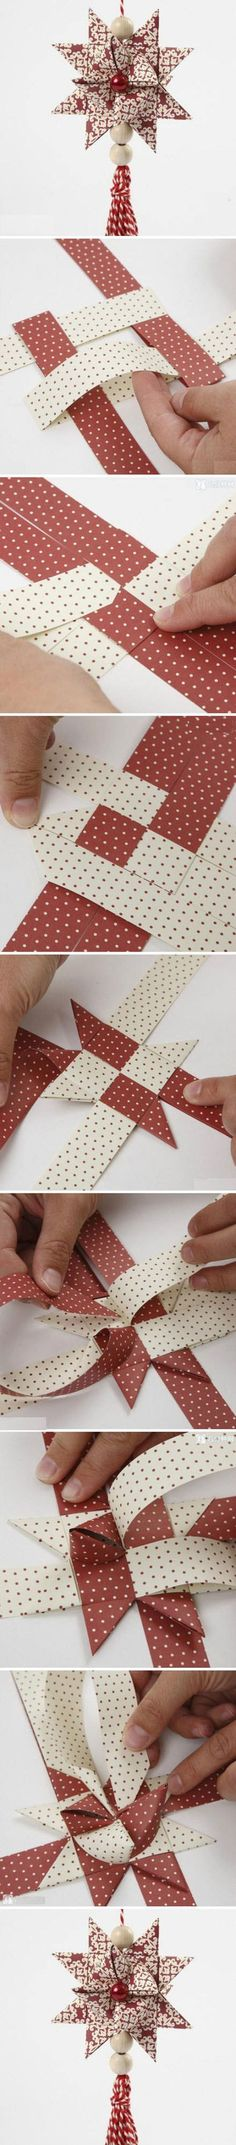 Very Beautiful Craft | Click to see More DIY & Crafts Tutorials on Our Site.